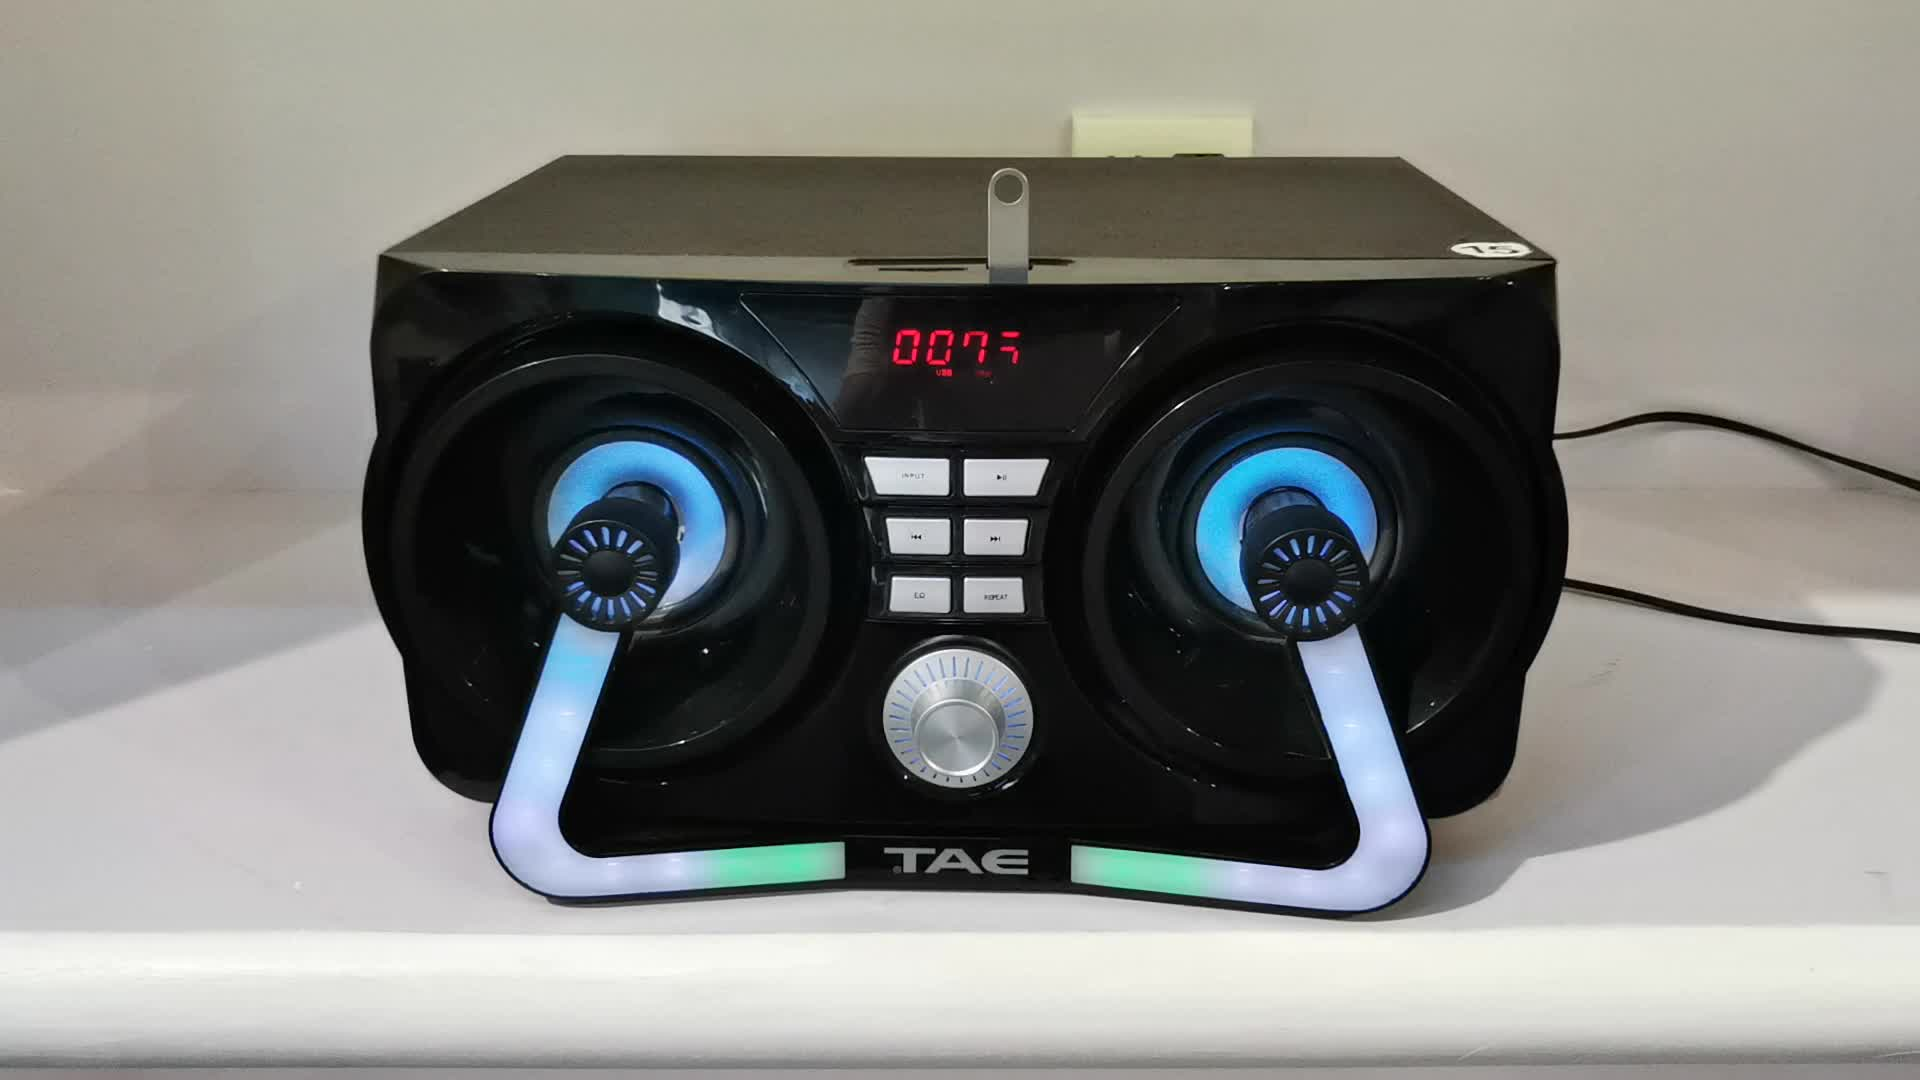 TS-1001 New Design Portable Speaker with USB/FM/SD card/BT/LED Display/Remote Control